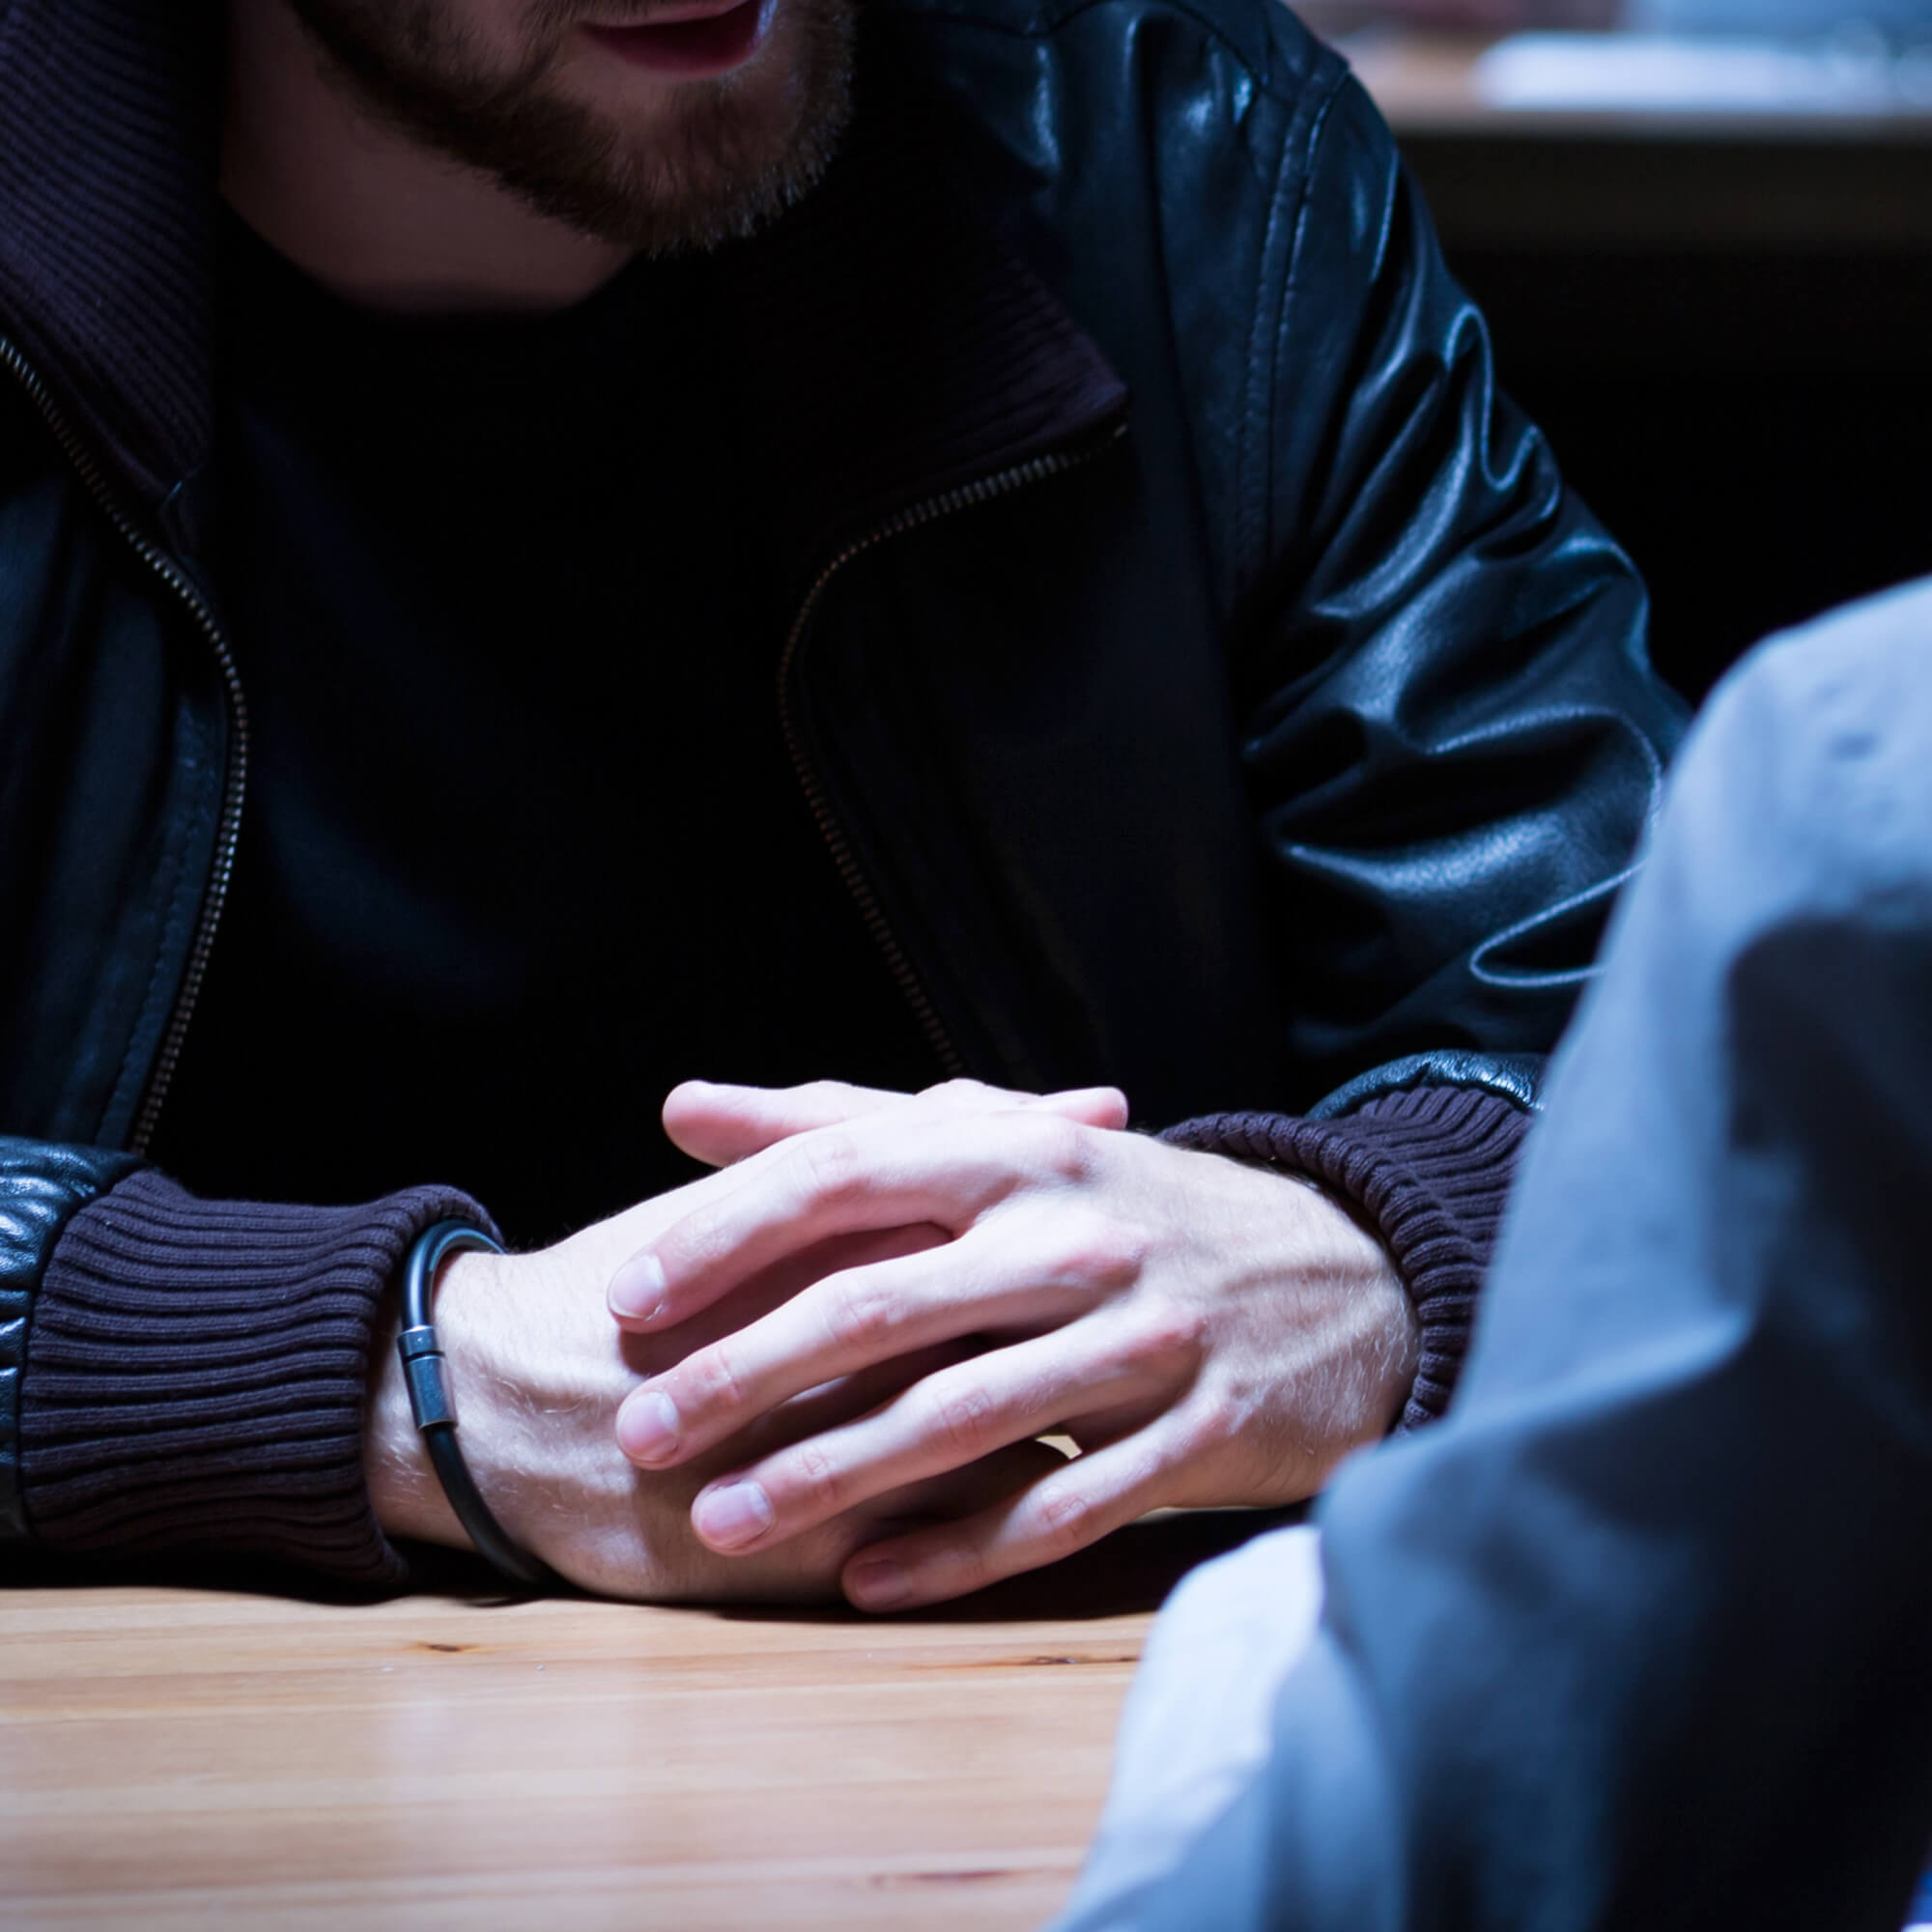 investigative interview taking place across a table